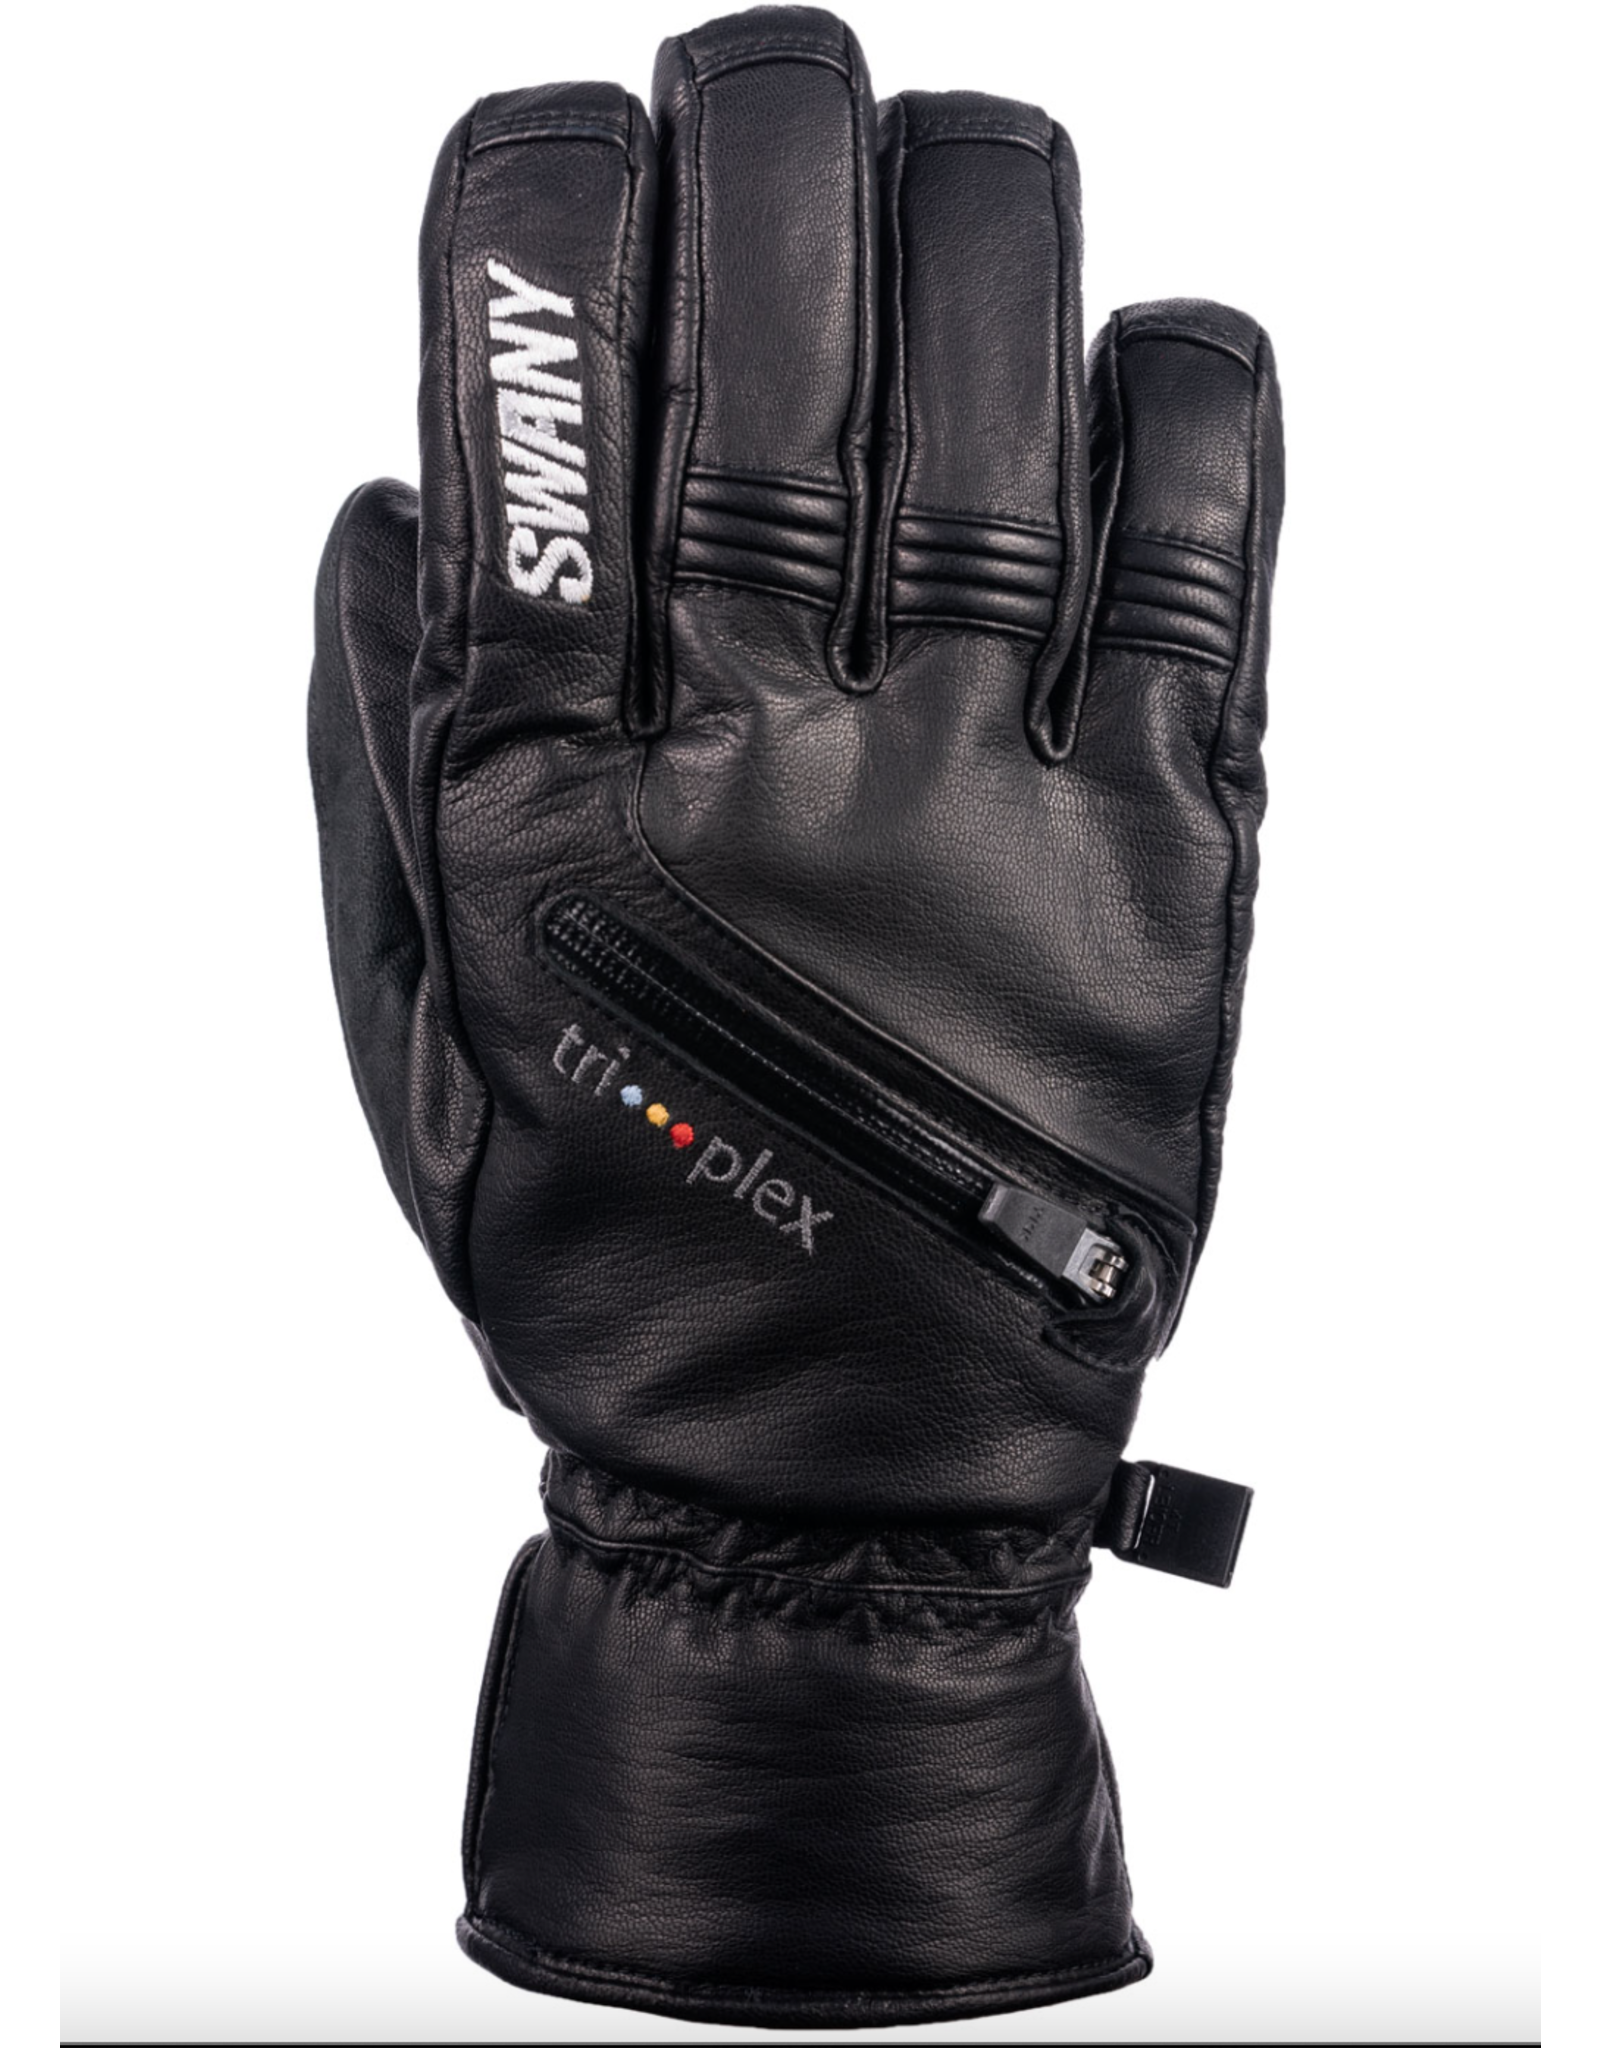 Swany X-CELL Under Gloves & Mitts 2022